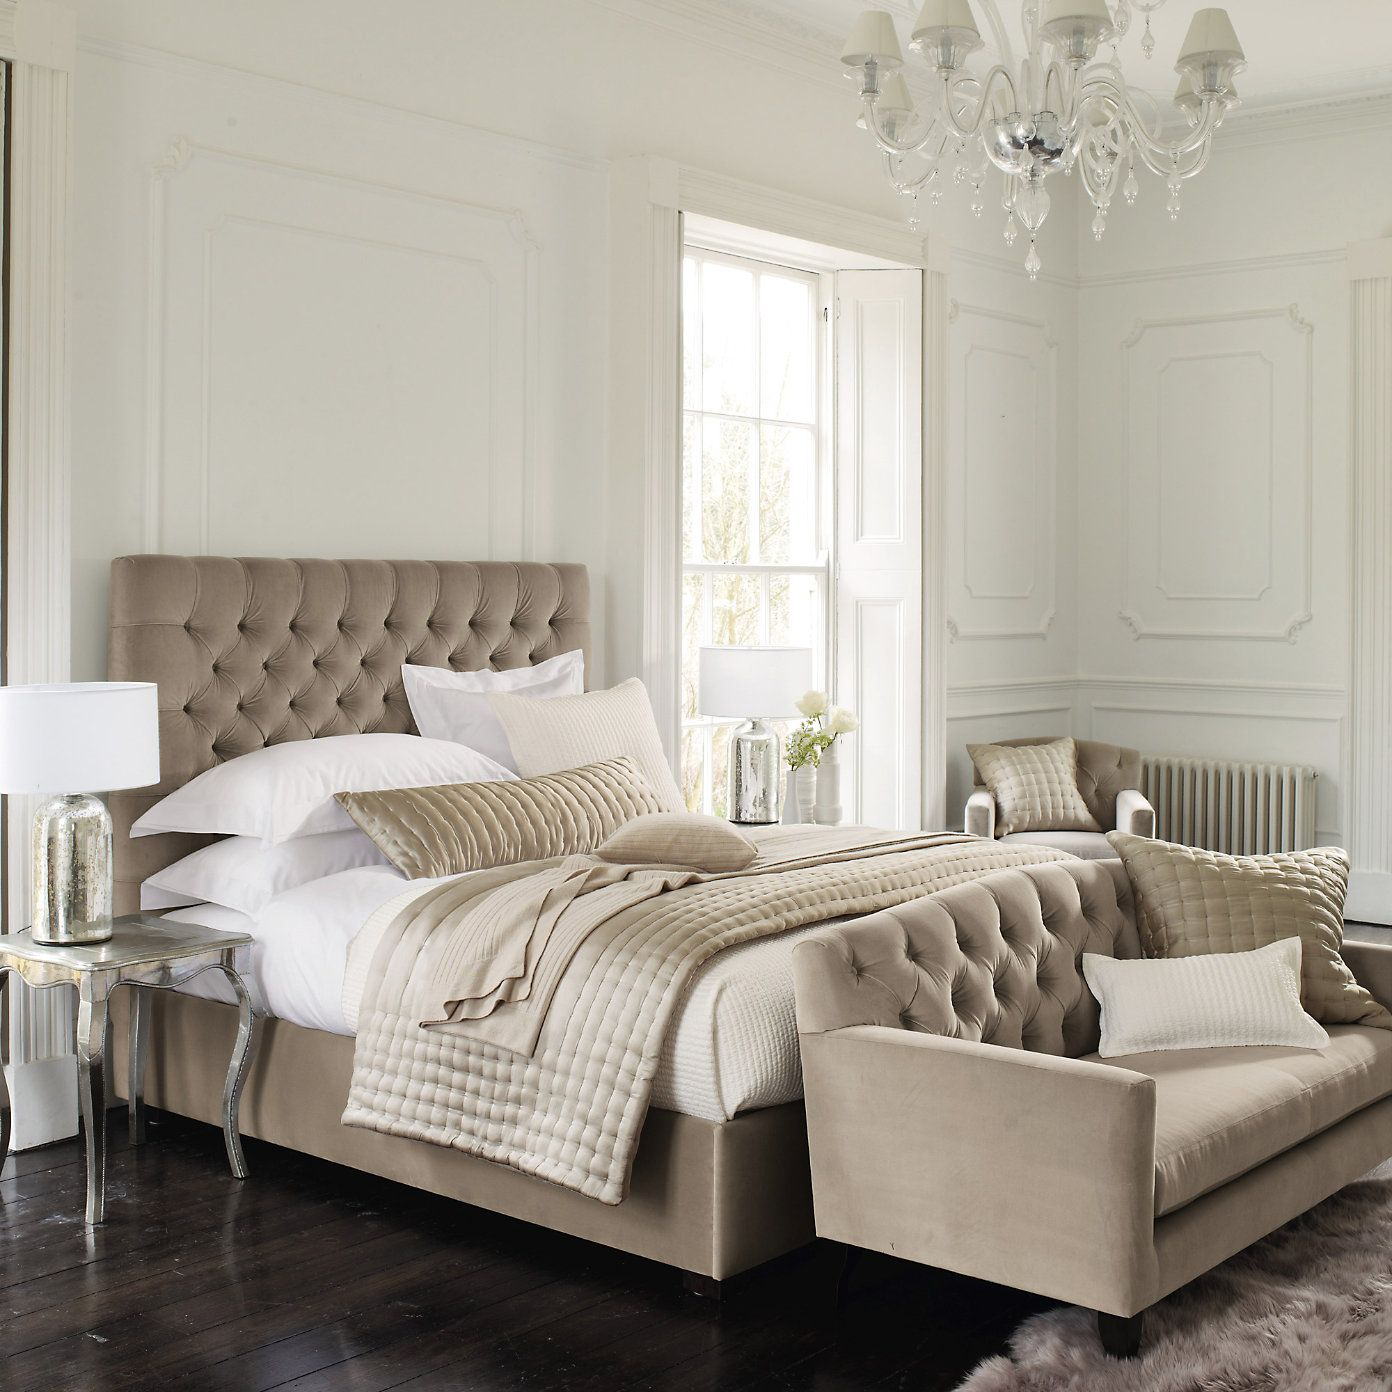 Dorchester Bed Linen Collection Bed Linen